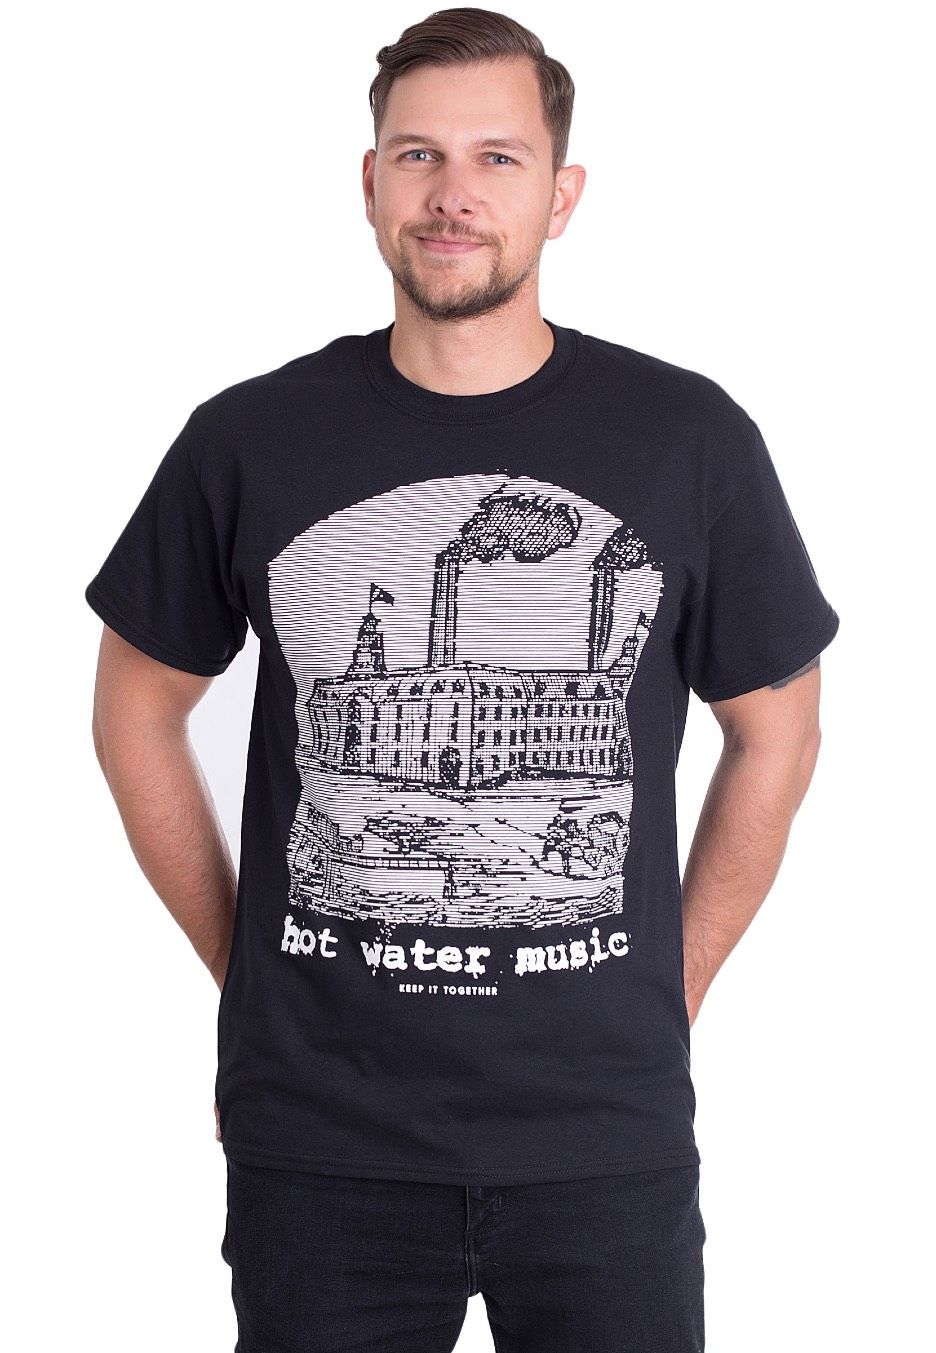 hot water music shirt 99 jeep cherokee sport radio wiring diagram keep it together t impericon com worldwide